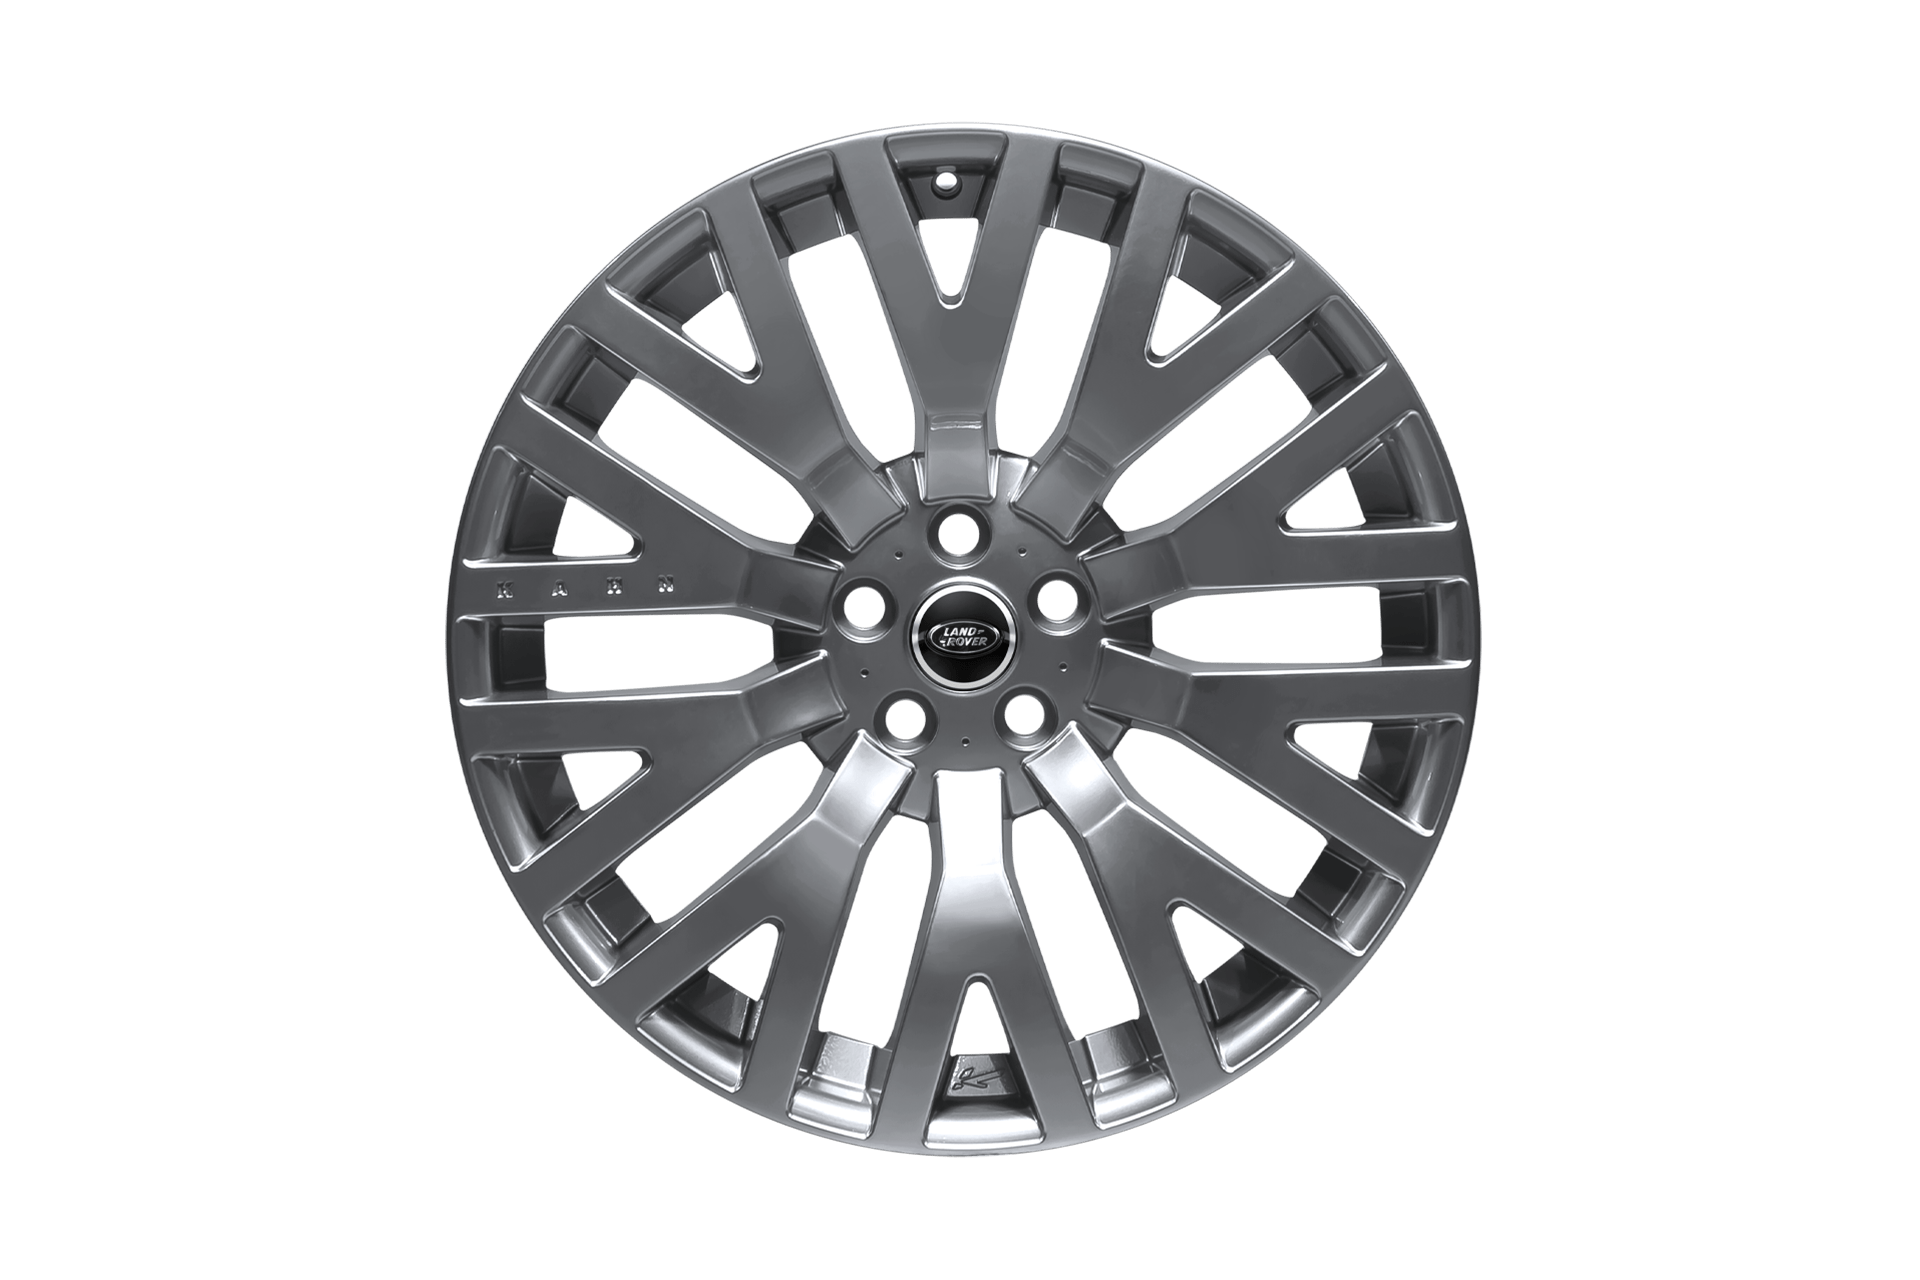 Range Rover Sport (2013-2018) Rs Light Alloy Wheels by Kahn - Image 3494